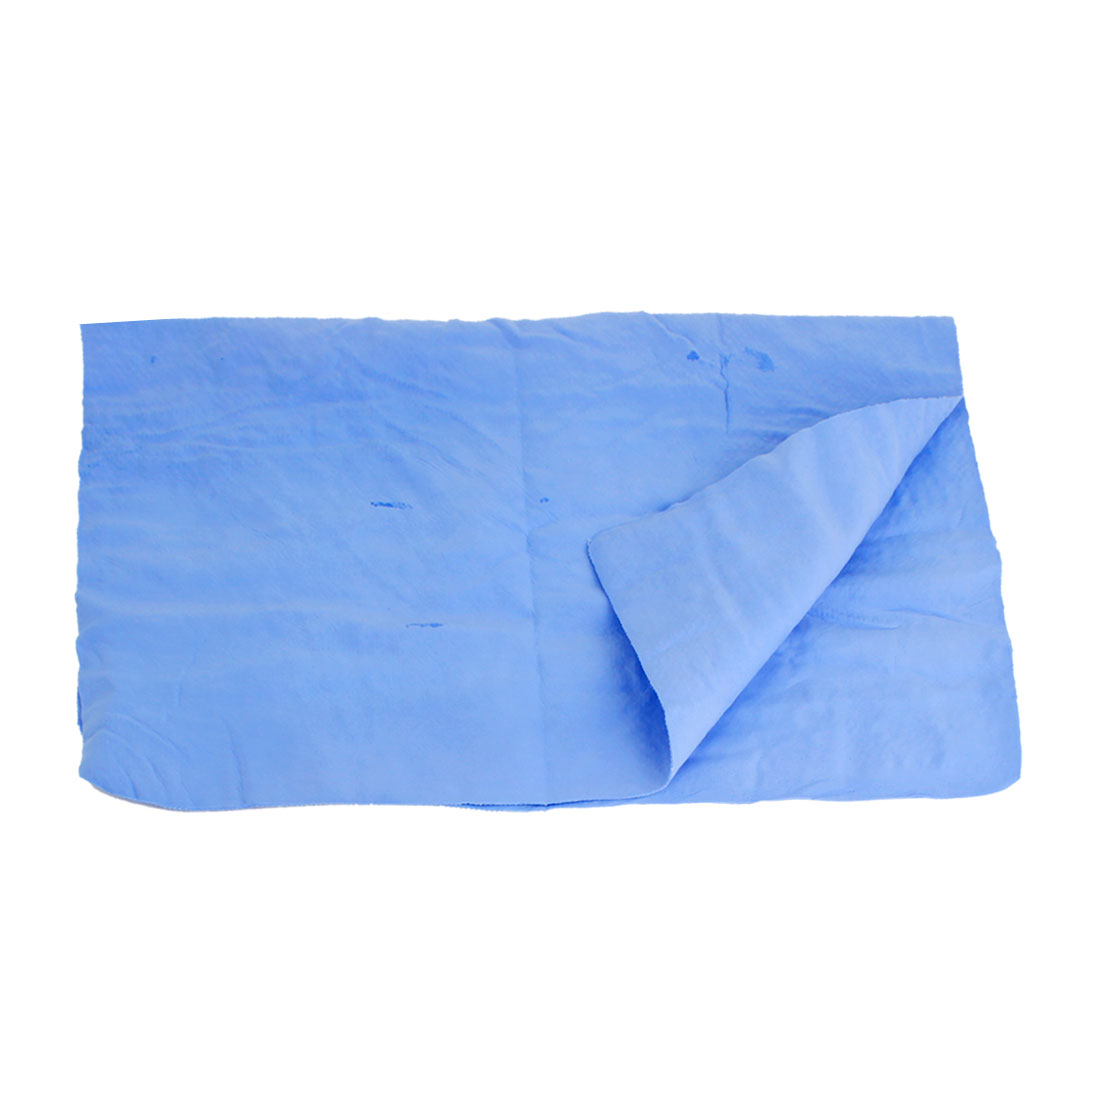 Sky Blue Synthetic Chamois Cleaning Cham Towel 42cm x 33cm for Car Furniture